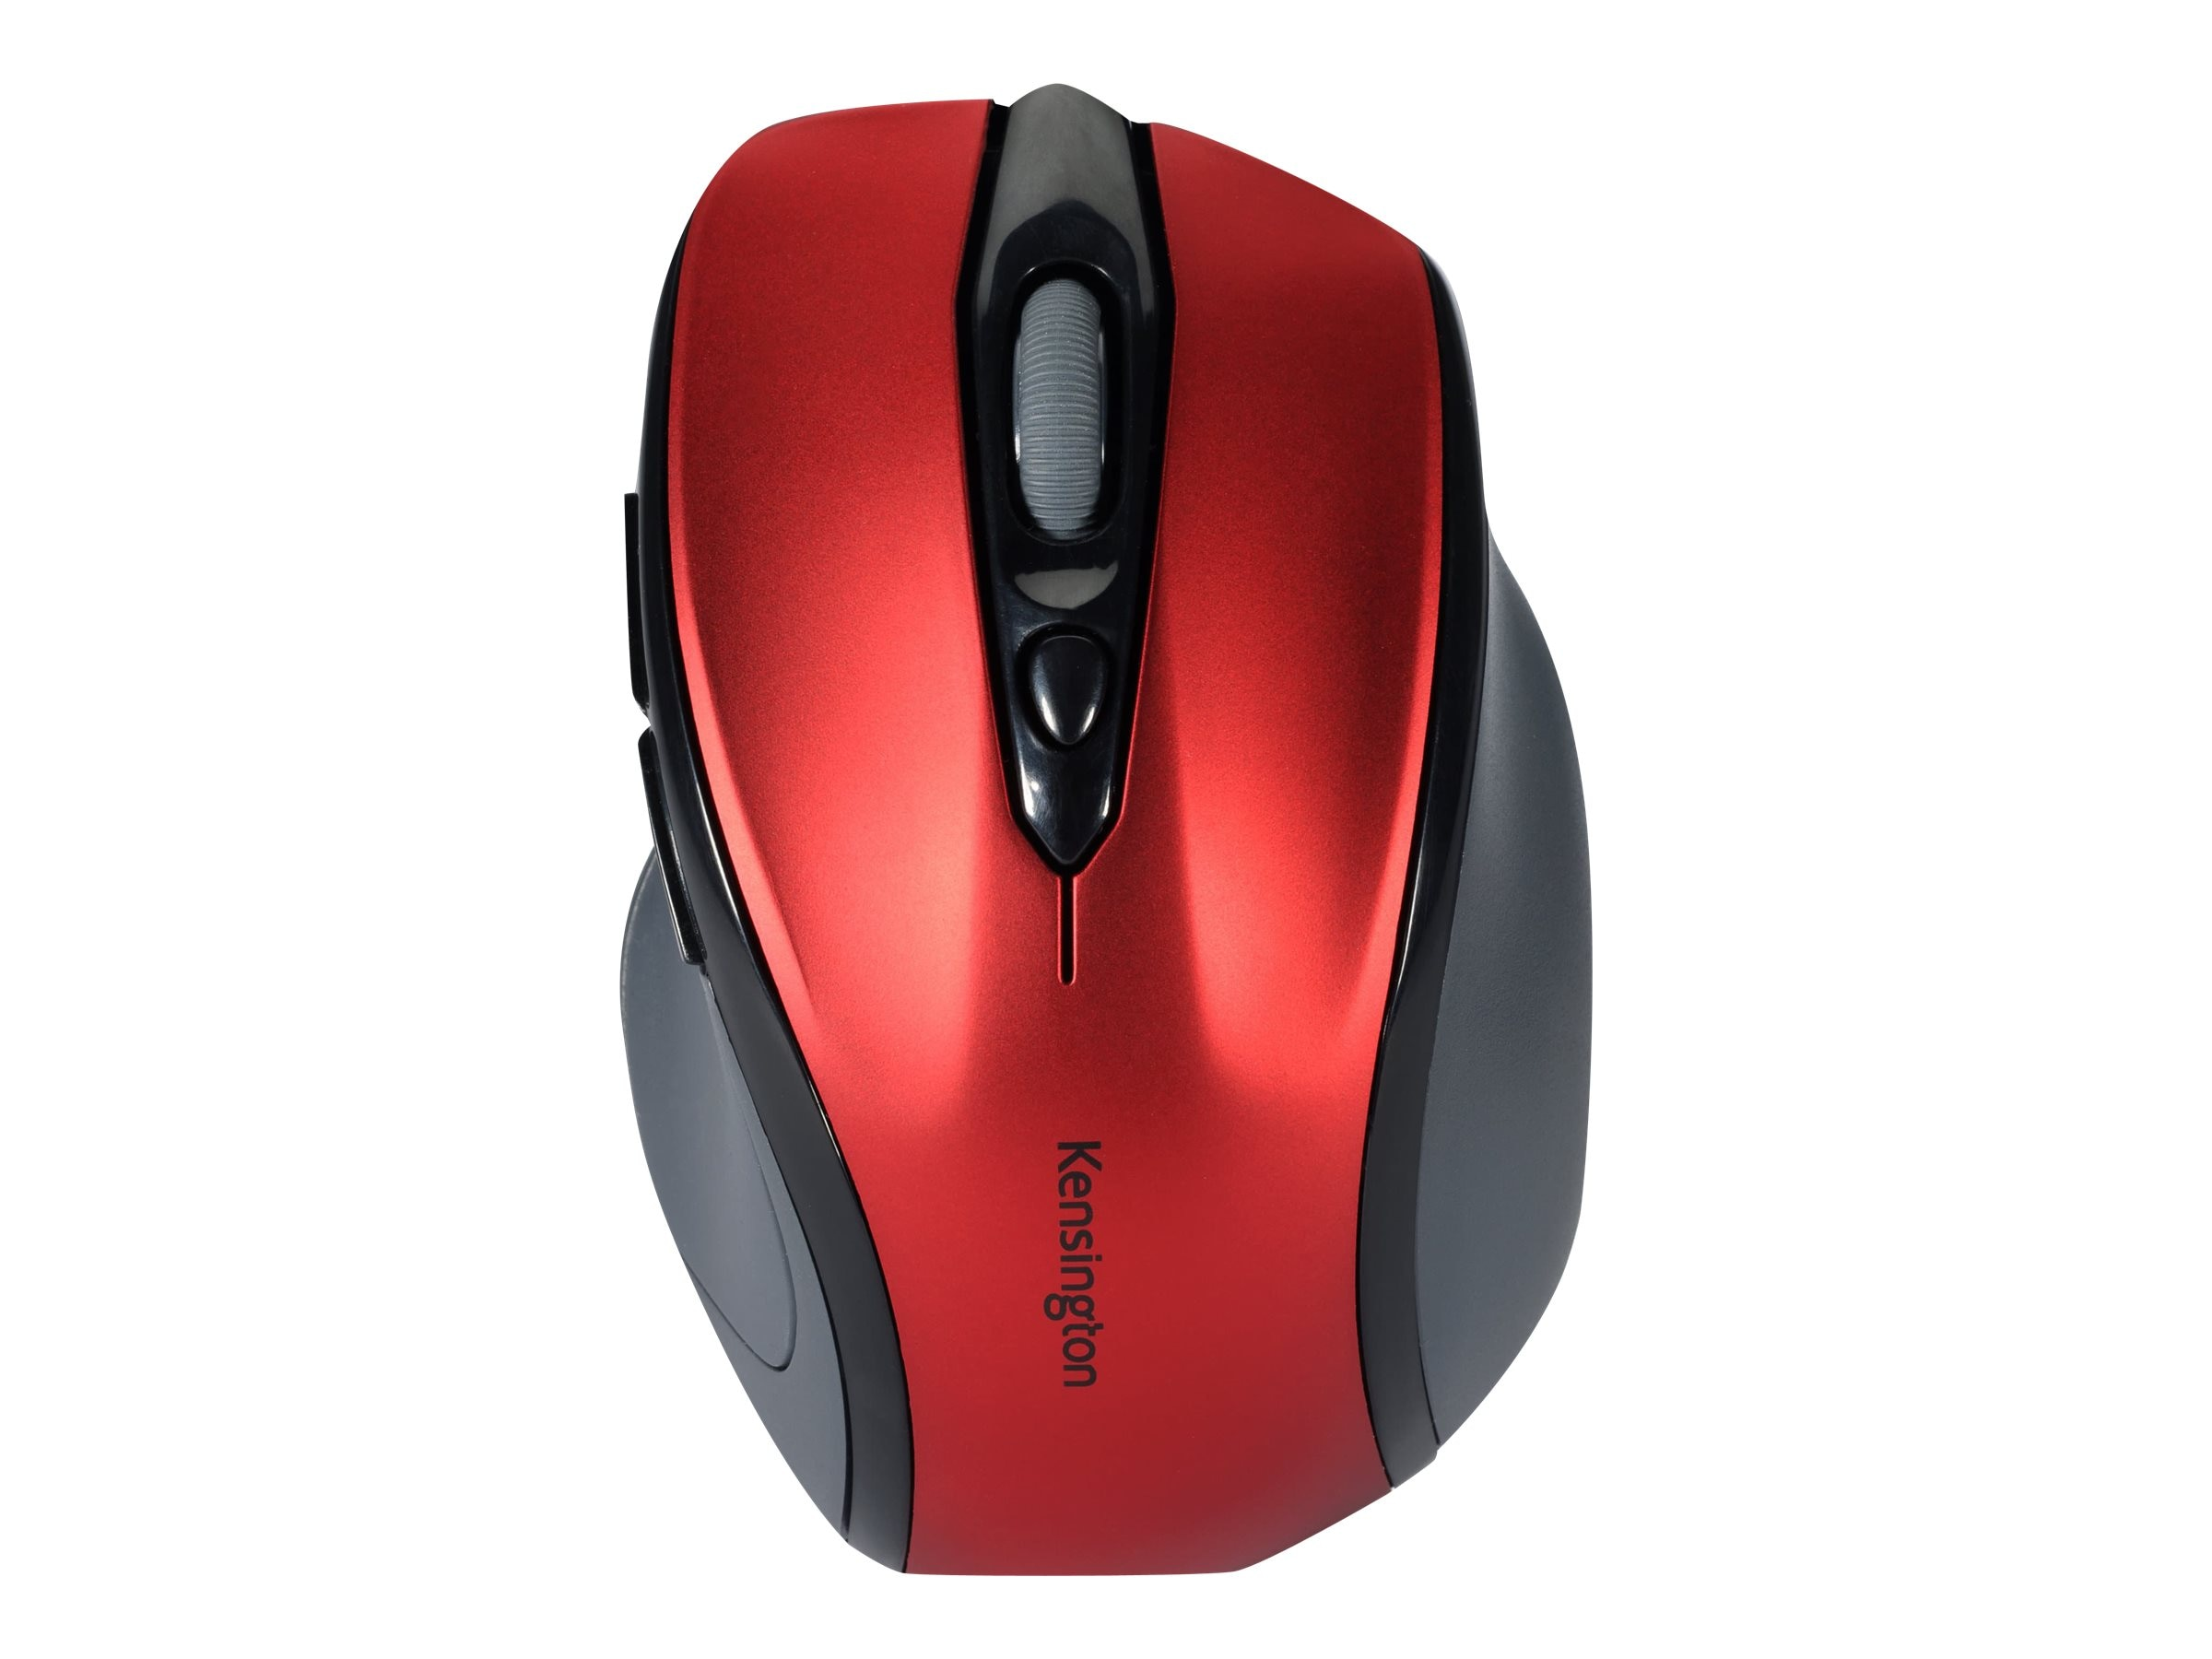 Kensington Pro Fit Mid-Size Wireless Mouse, Ruby Red, K72422AM